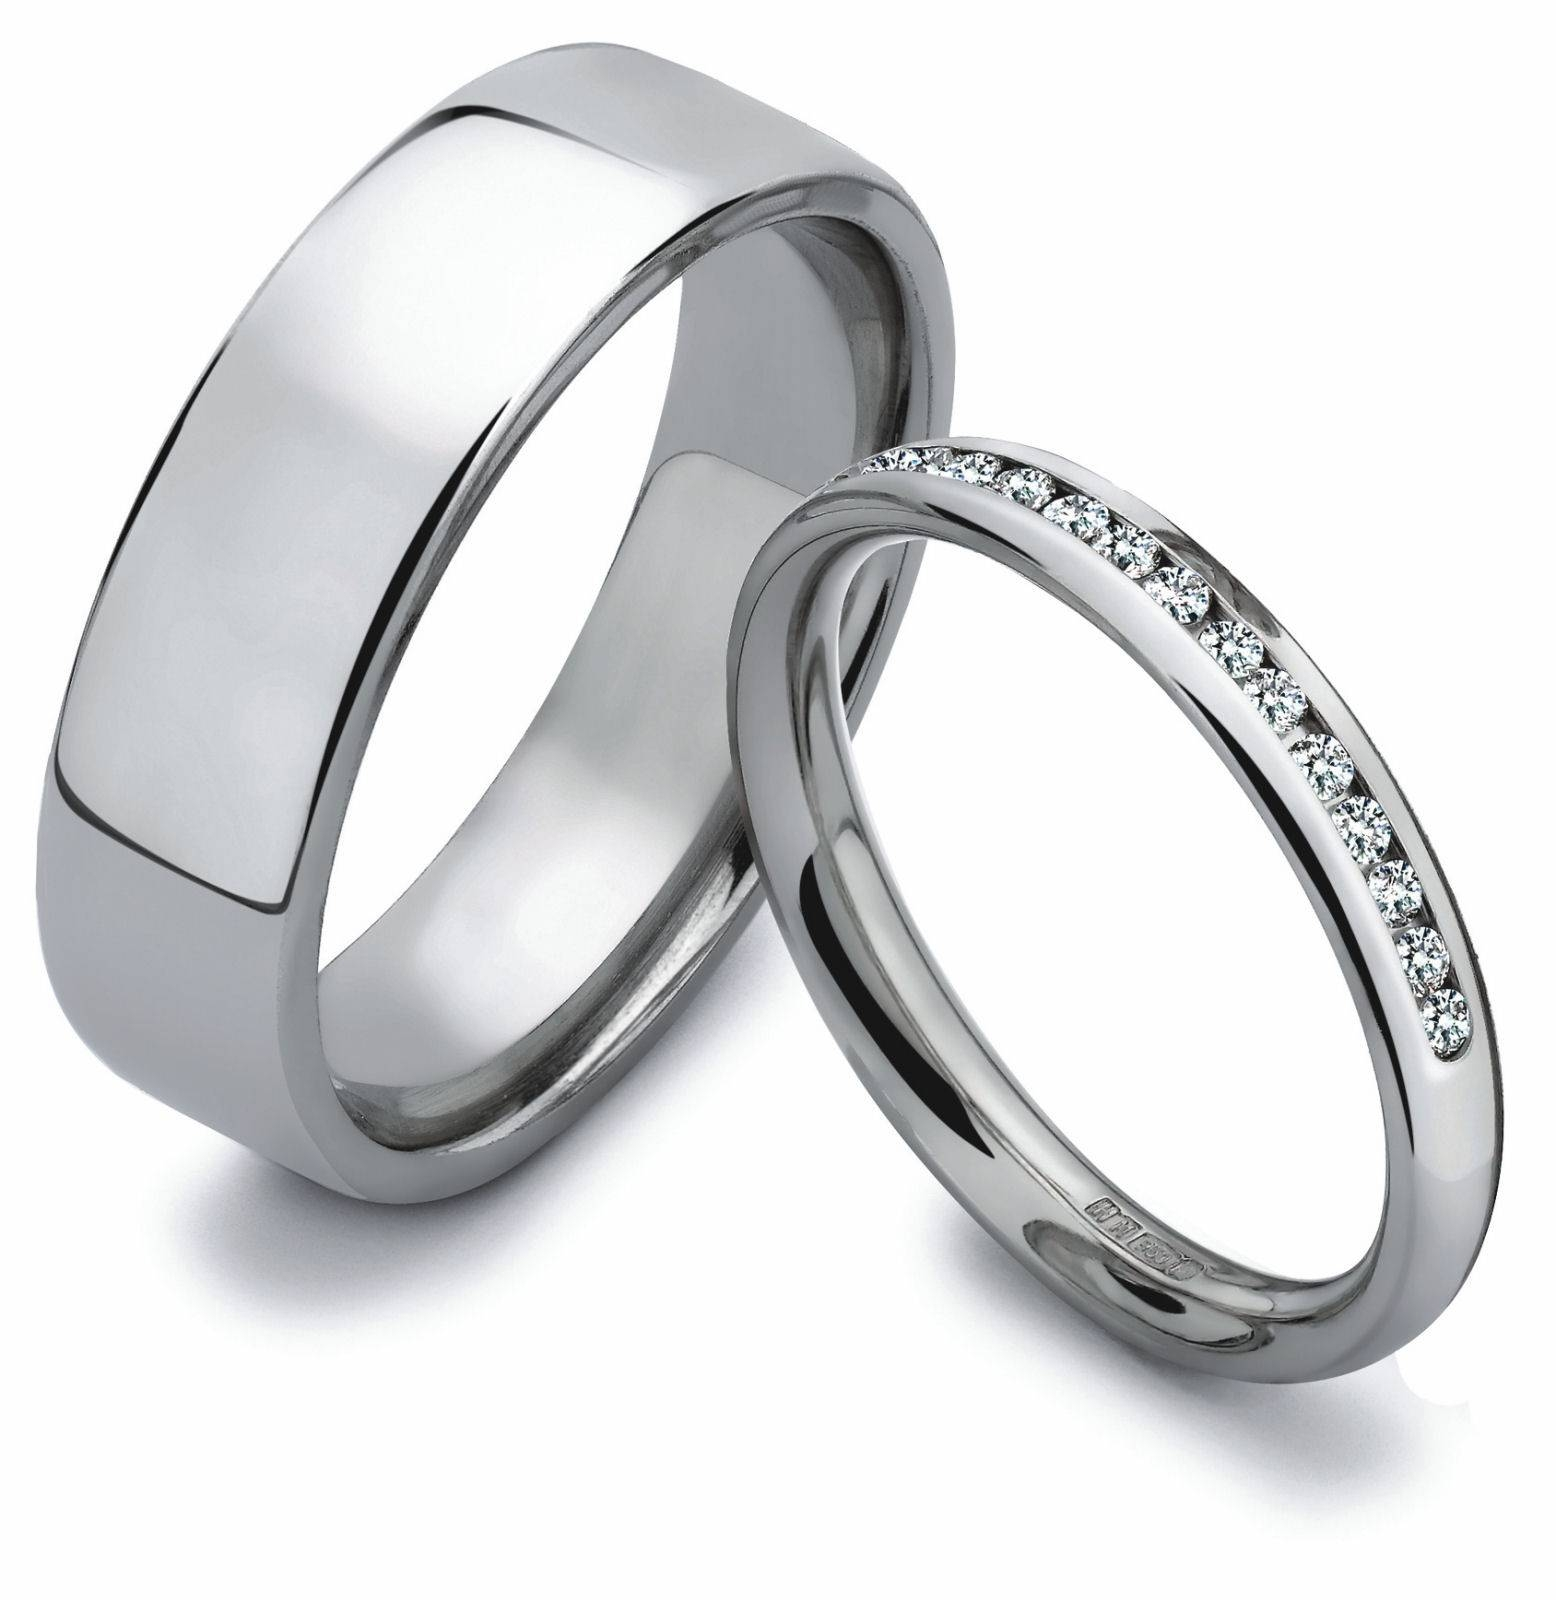 Cheap His And Hers Wedding Ring Sets | Wedding Ideas Regarding Titanium Wedding Bands Sets His Hers (View 1 of 15)